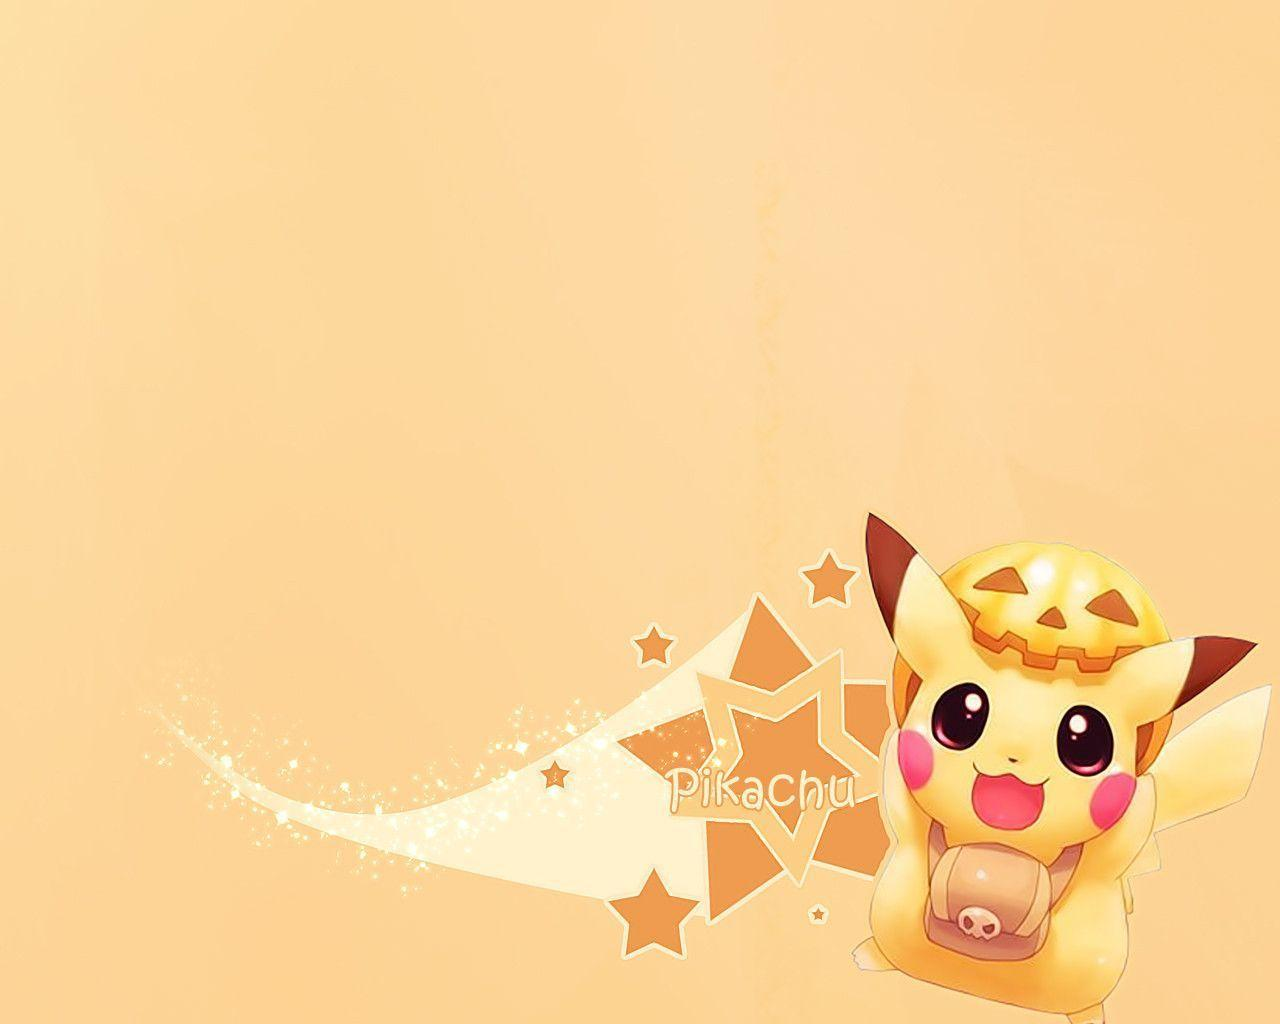 cute pikachu wallpapers pokemon absurdly specifically request thread desktop halloween index wallpapersafari wallpapercave